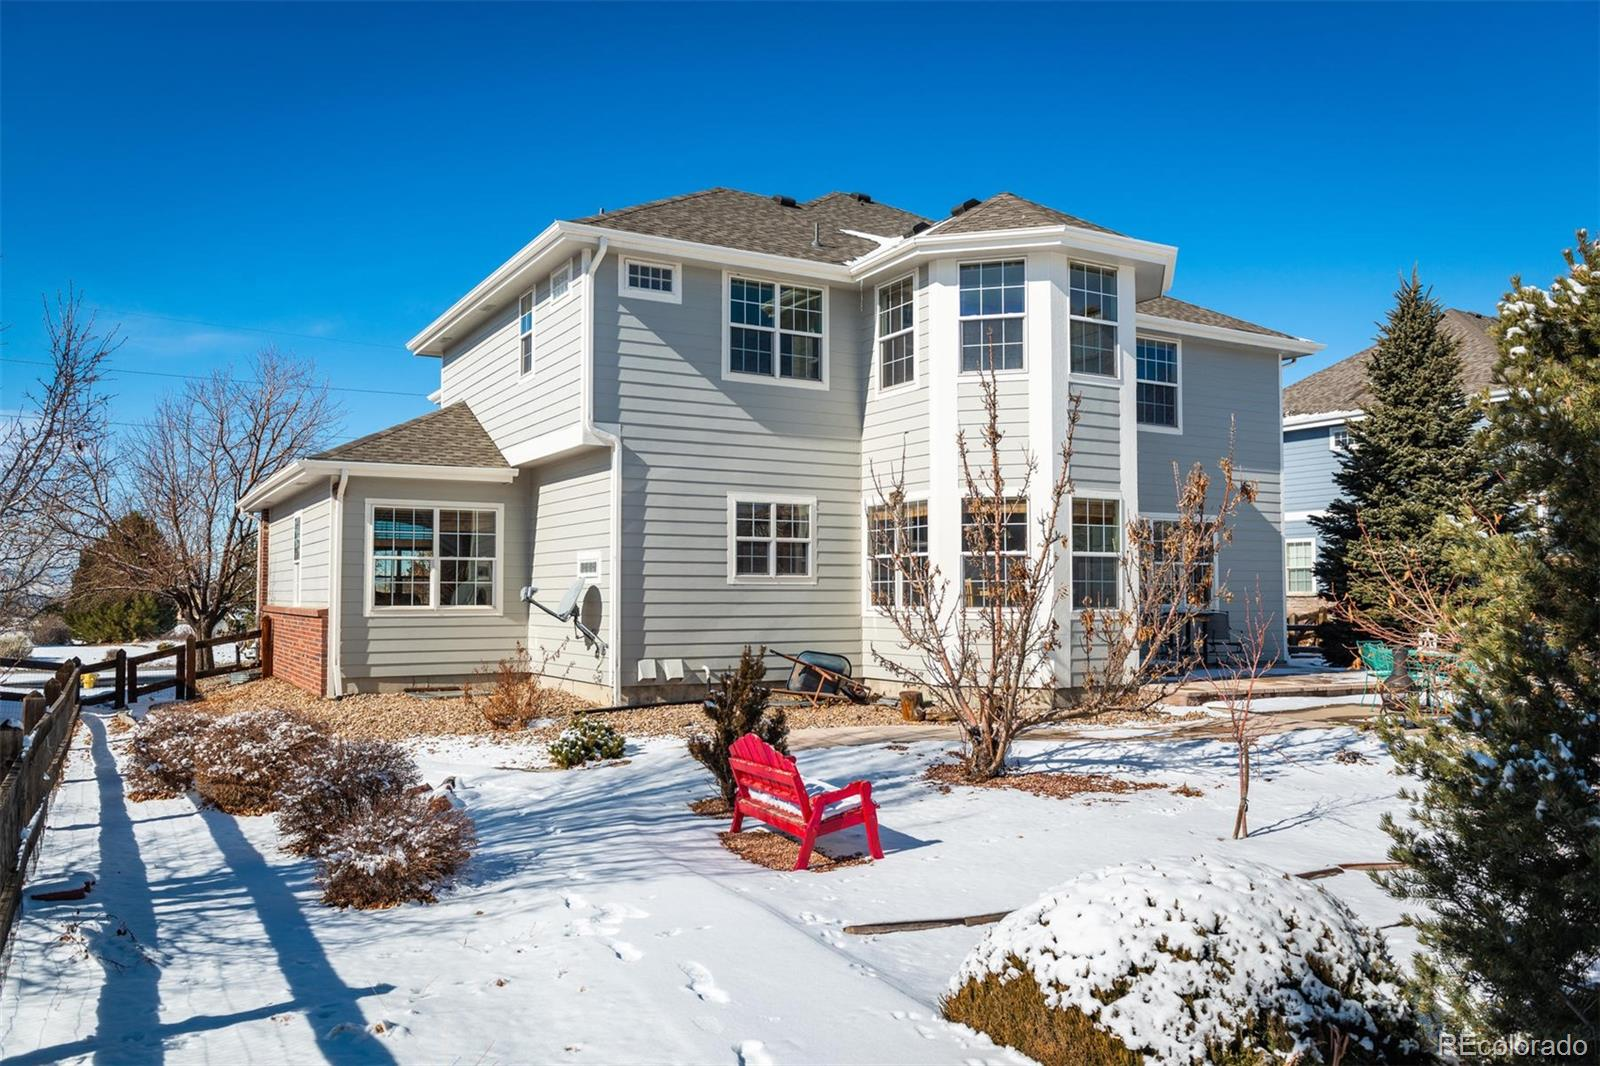 MLS# 3442851 - 21 - 6552 S Ouray Way, Aurora, CO 80016